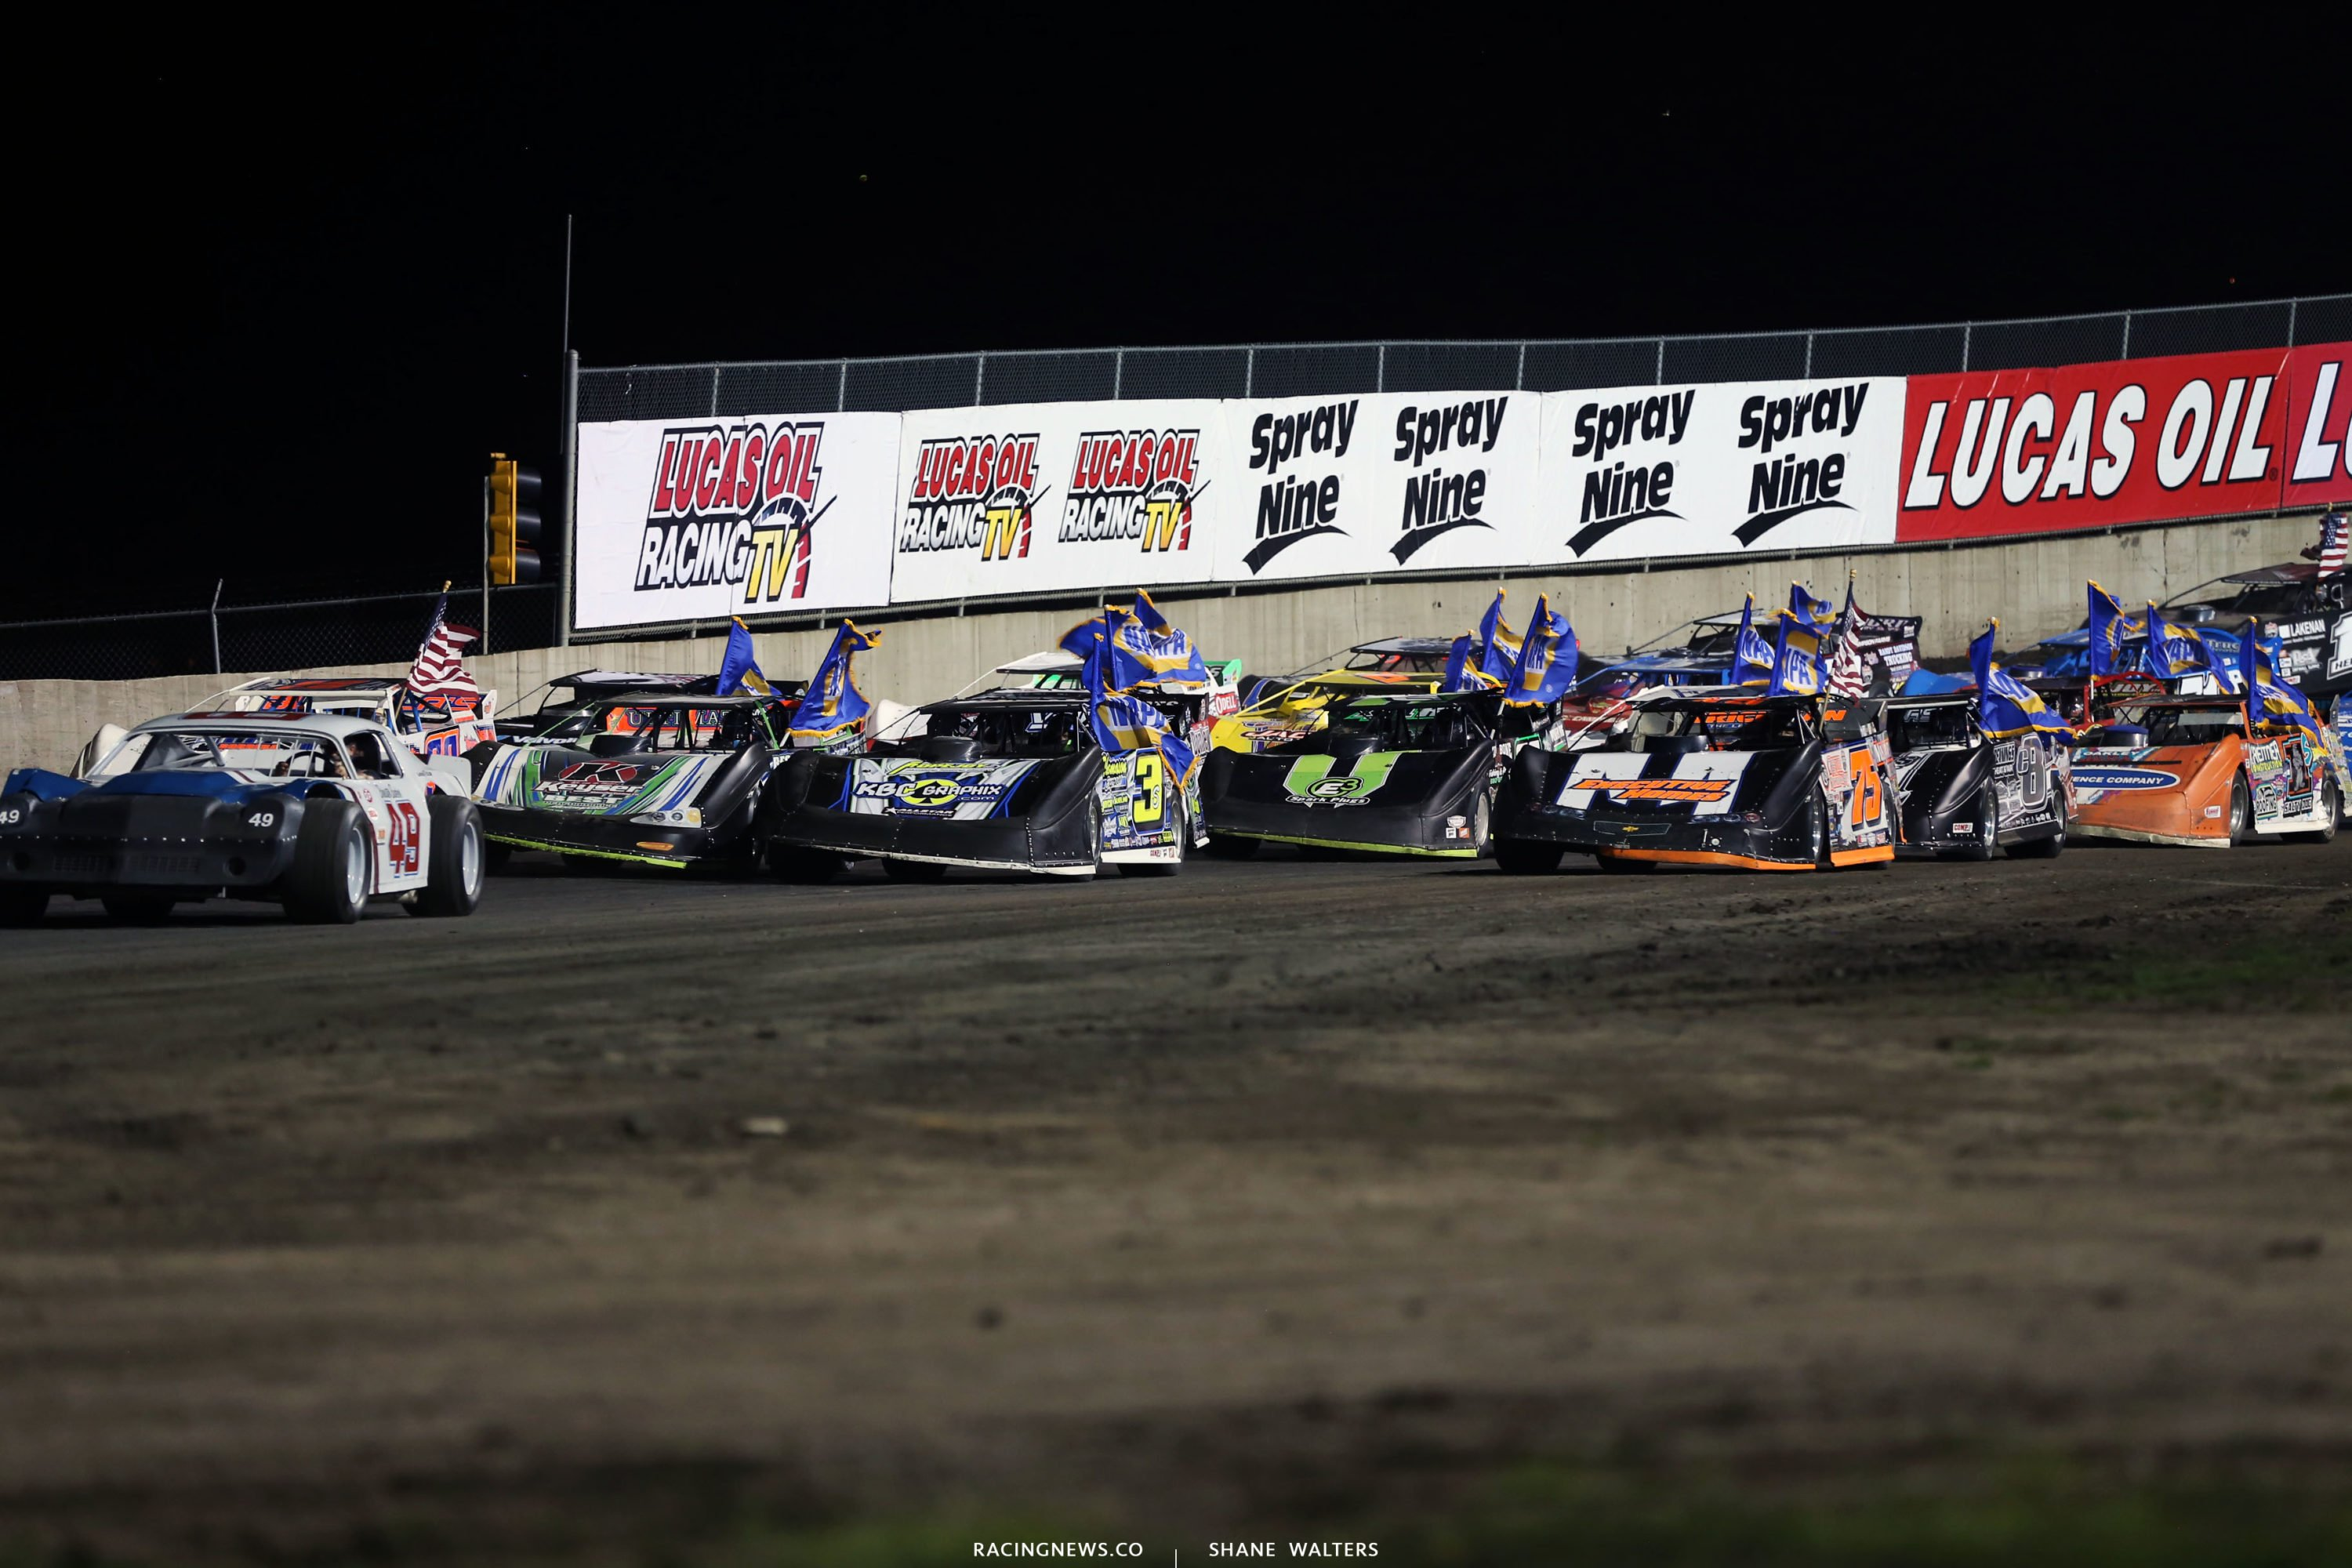 4 Wide Salute at Tri-City Speedway ahead of the Lucas Oil Late Model feature